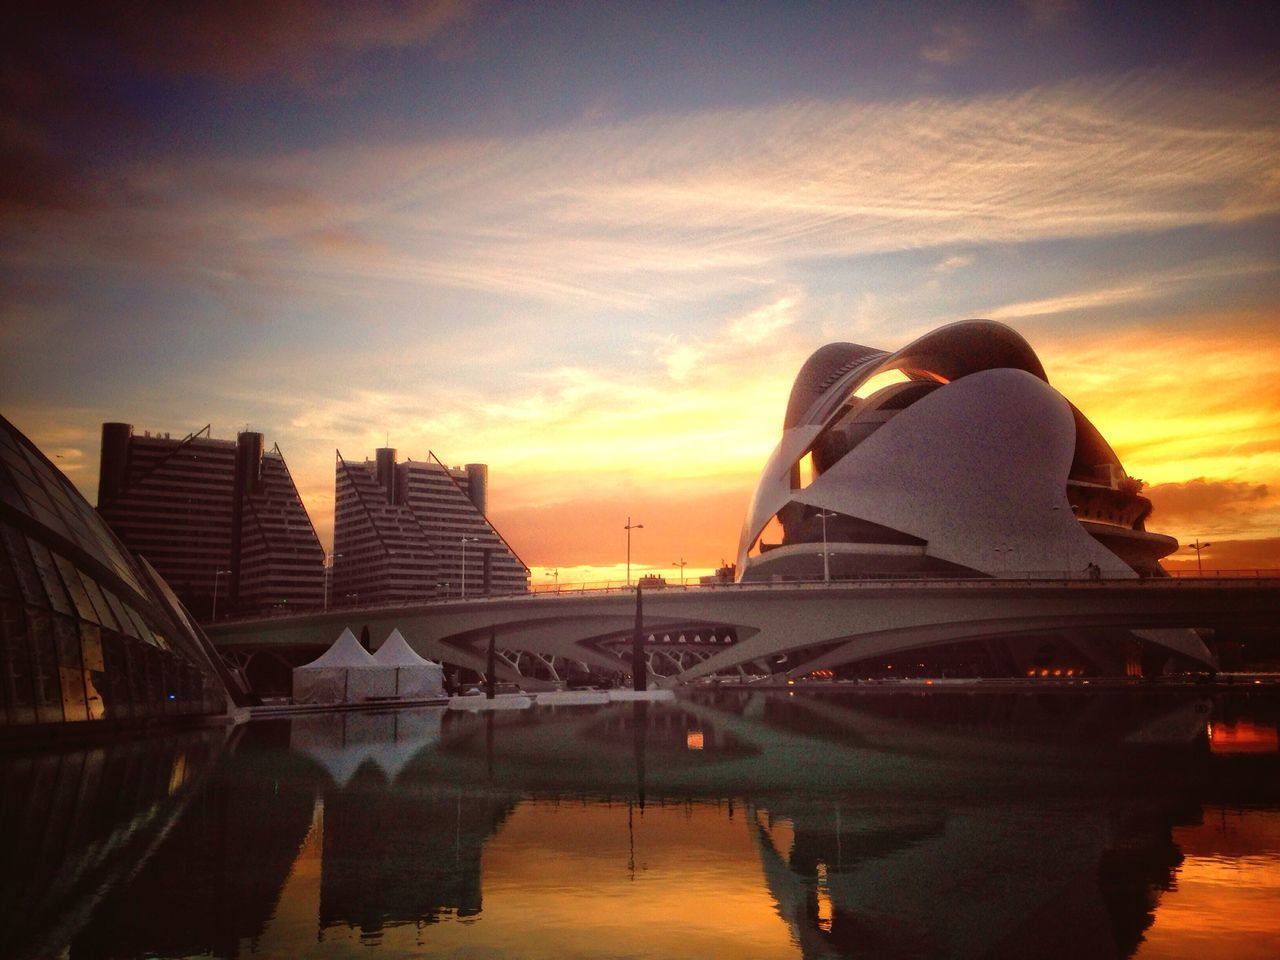 Looking towards The Opera House in Valencia, Spain. Sunset Sky Water Cloud - Sky Built Structure Building Exterior Architecture Outdoors Nature No People Beauty In Nature Day Valencia, Spain Opera House Twilight Dusk Sundown